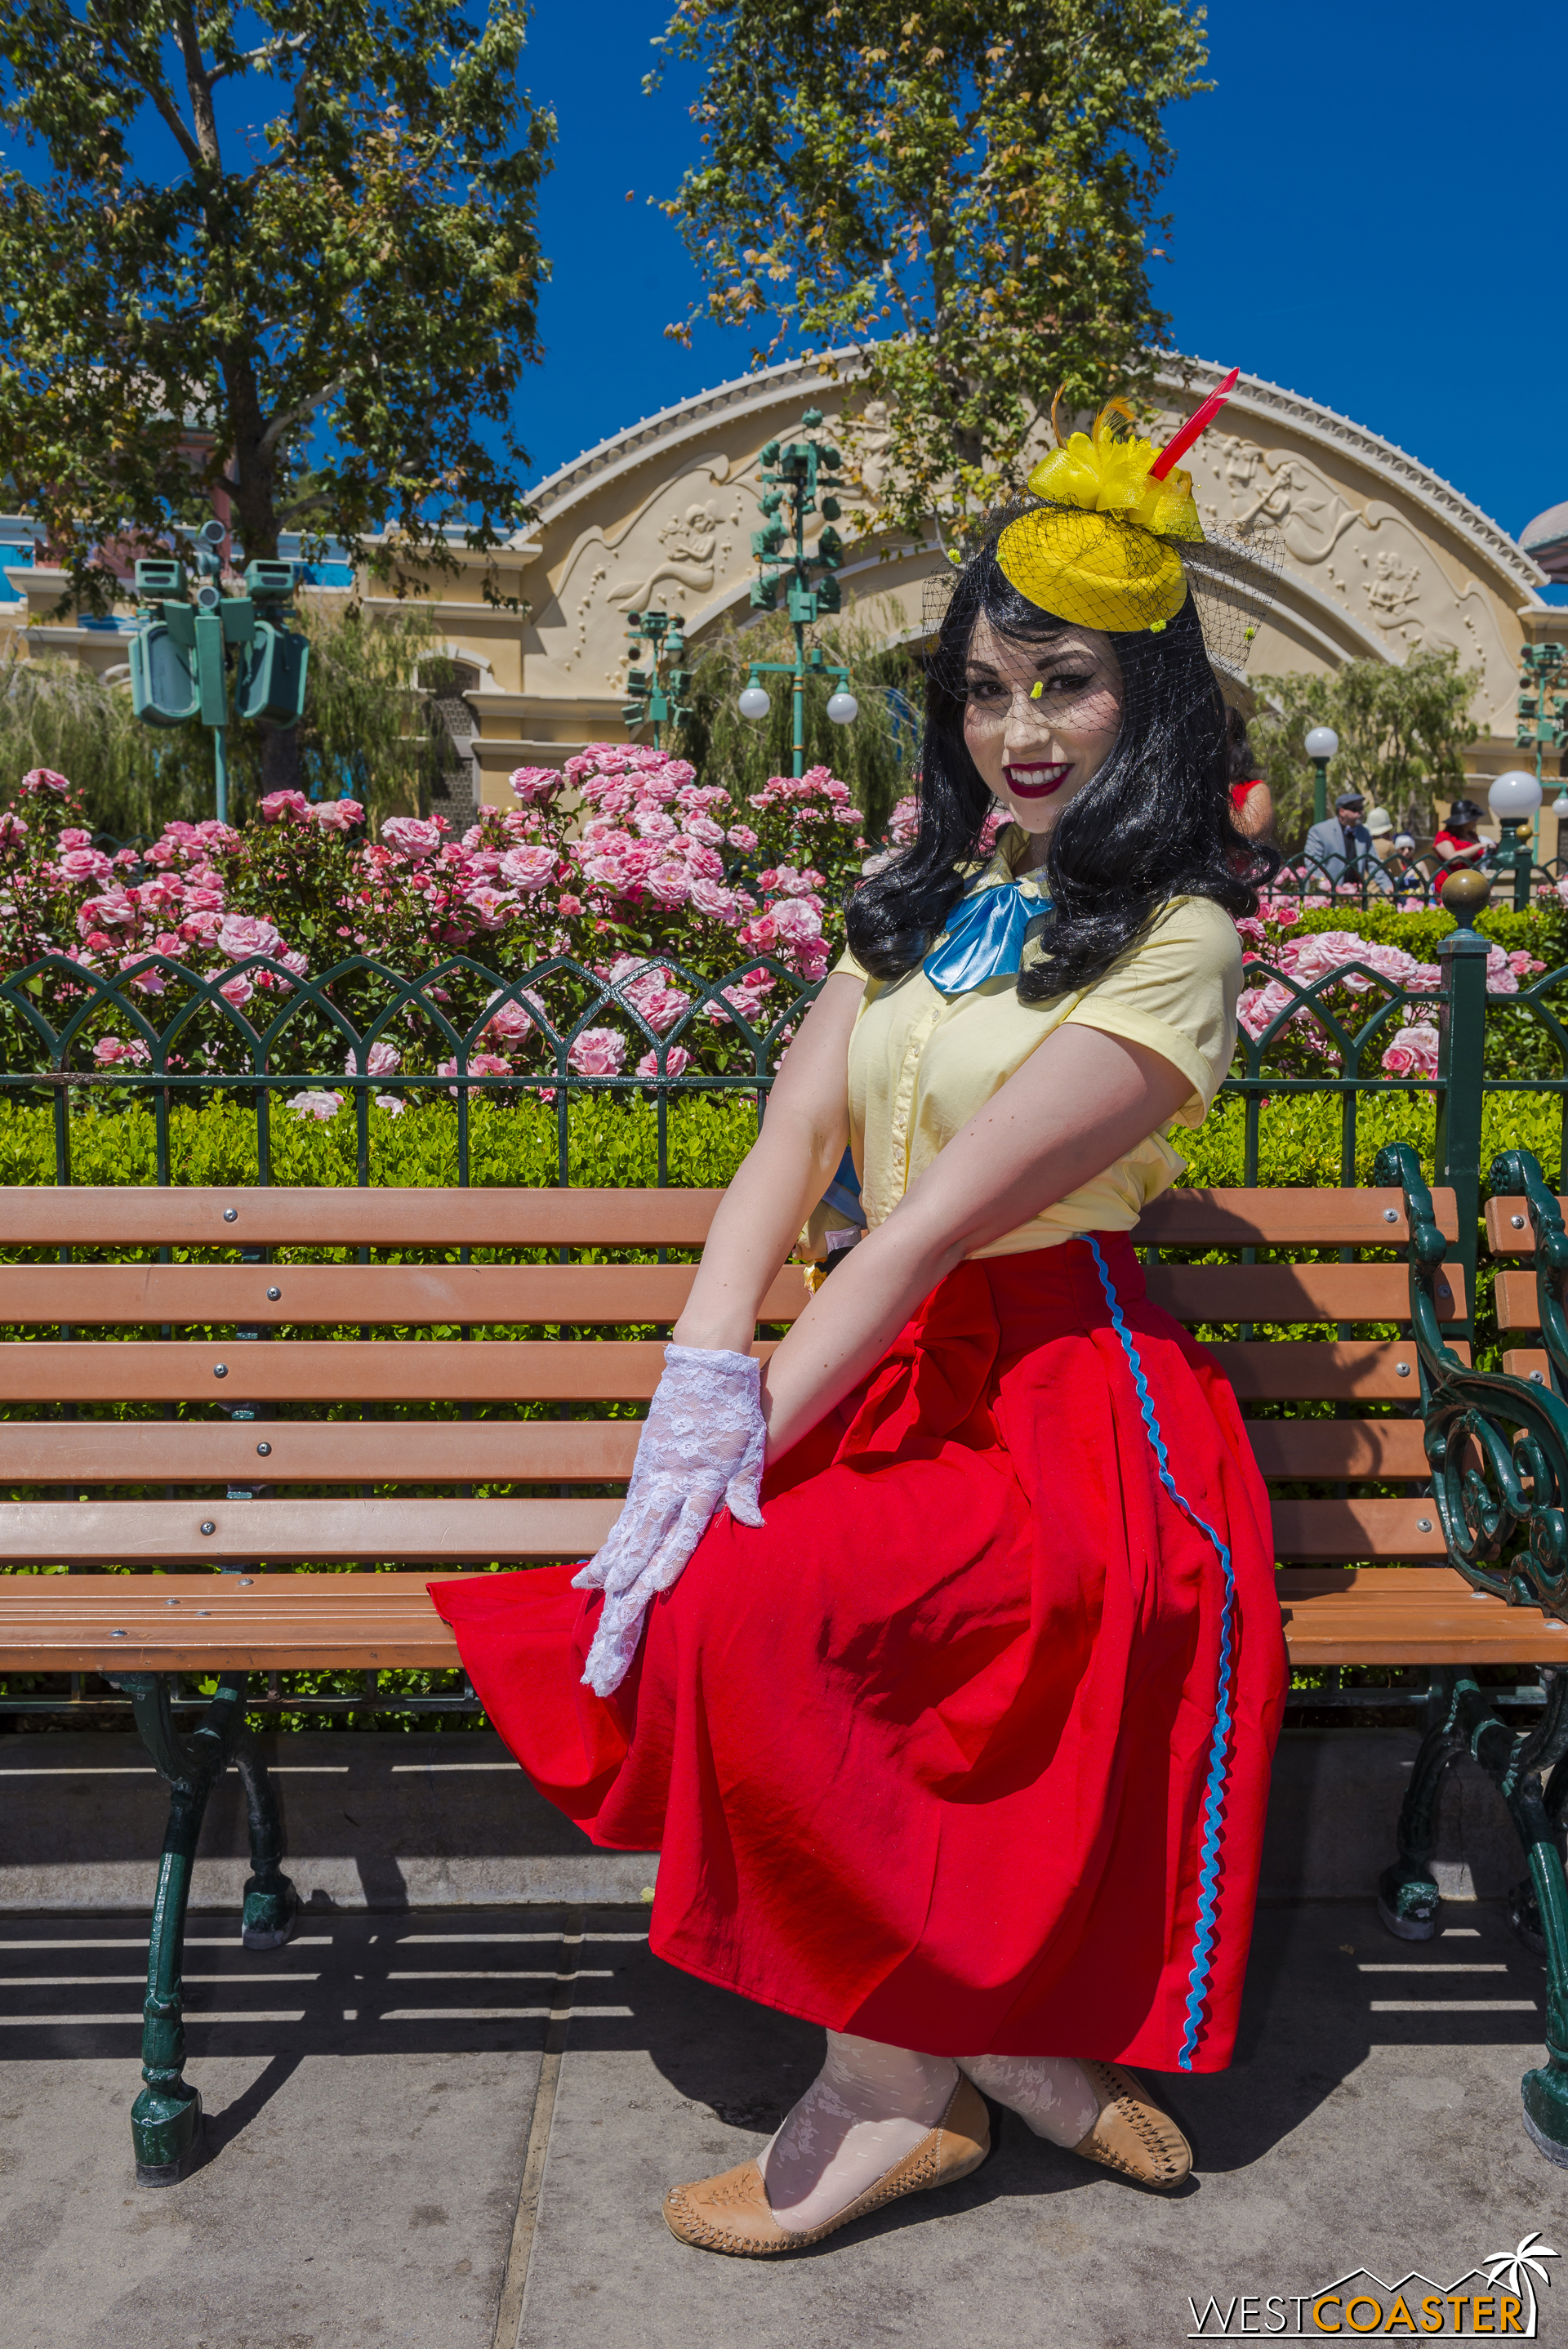 Gender bend Disneybounds are common too, like this Pinocchio.